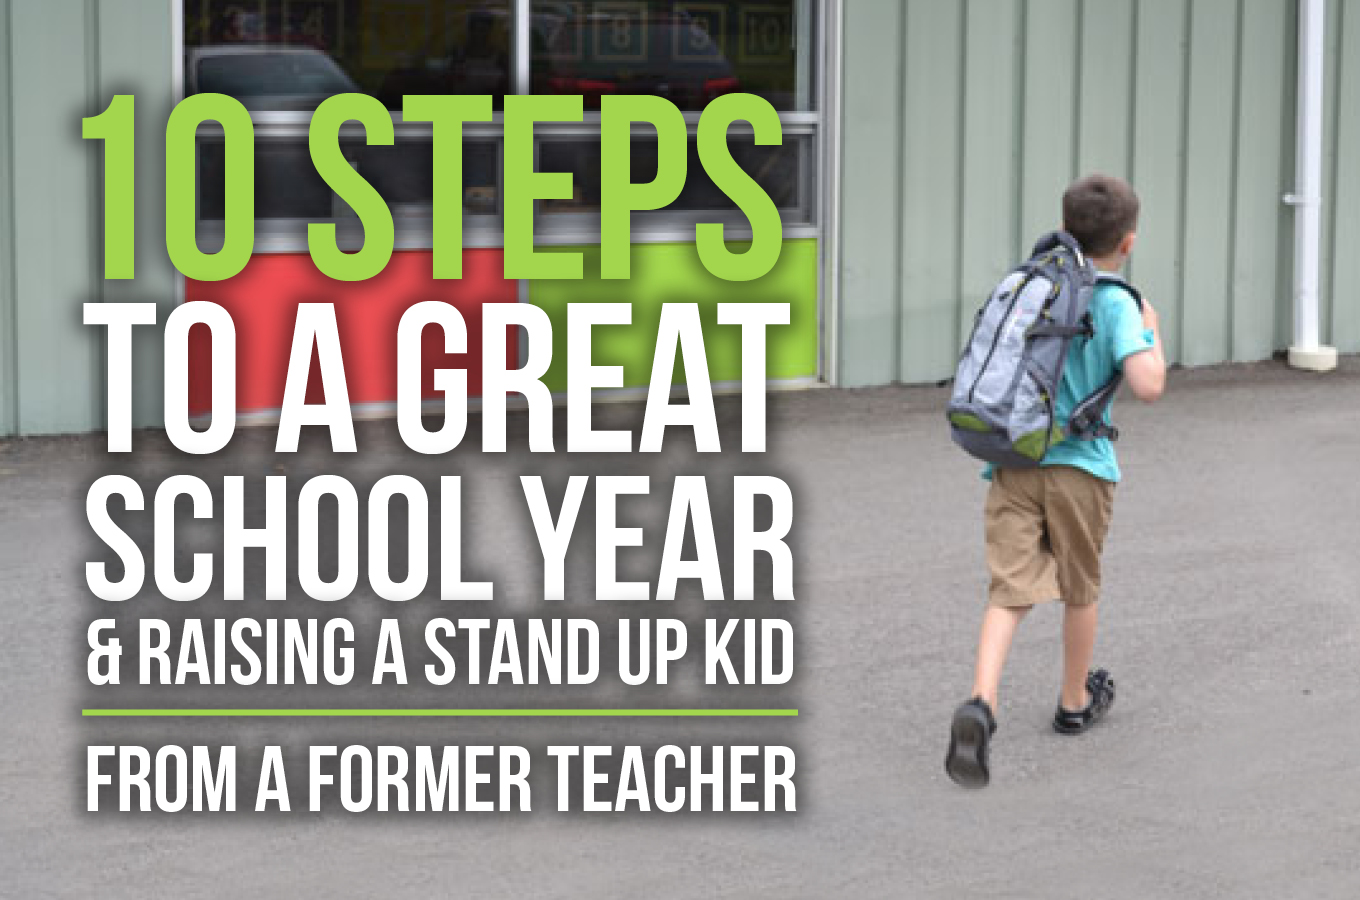 10-steps-great-school-year